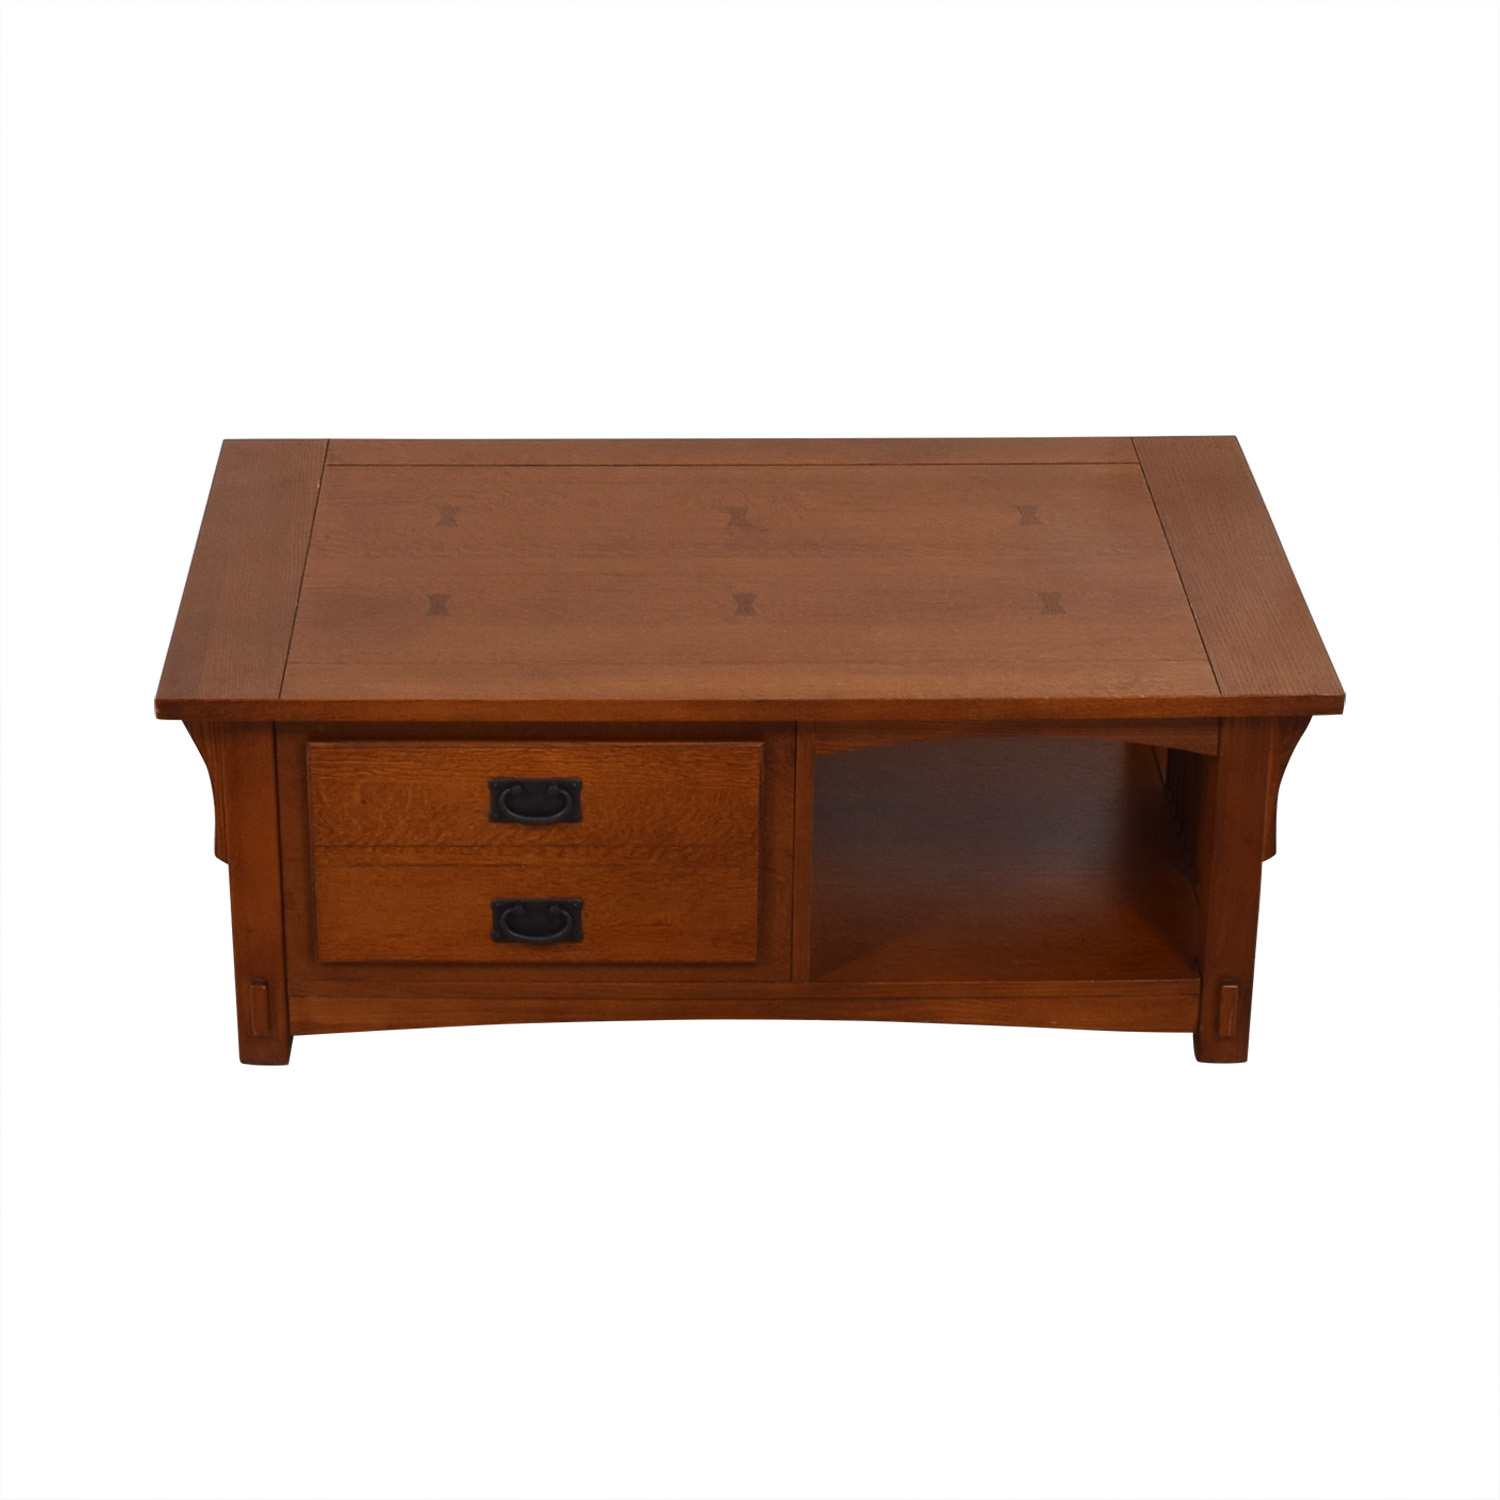 89 Off Mission Style Wood Single Drawer Coffee Table Tables